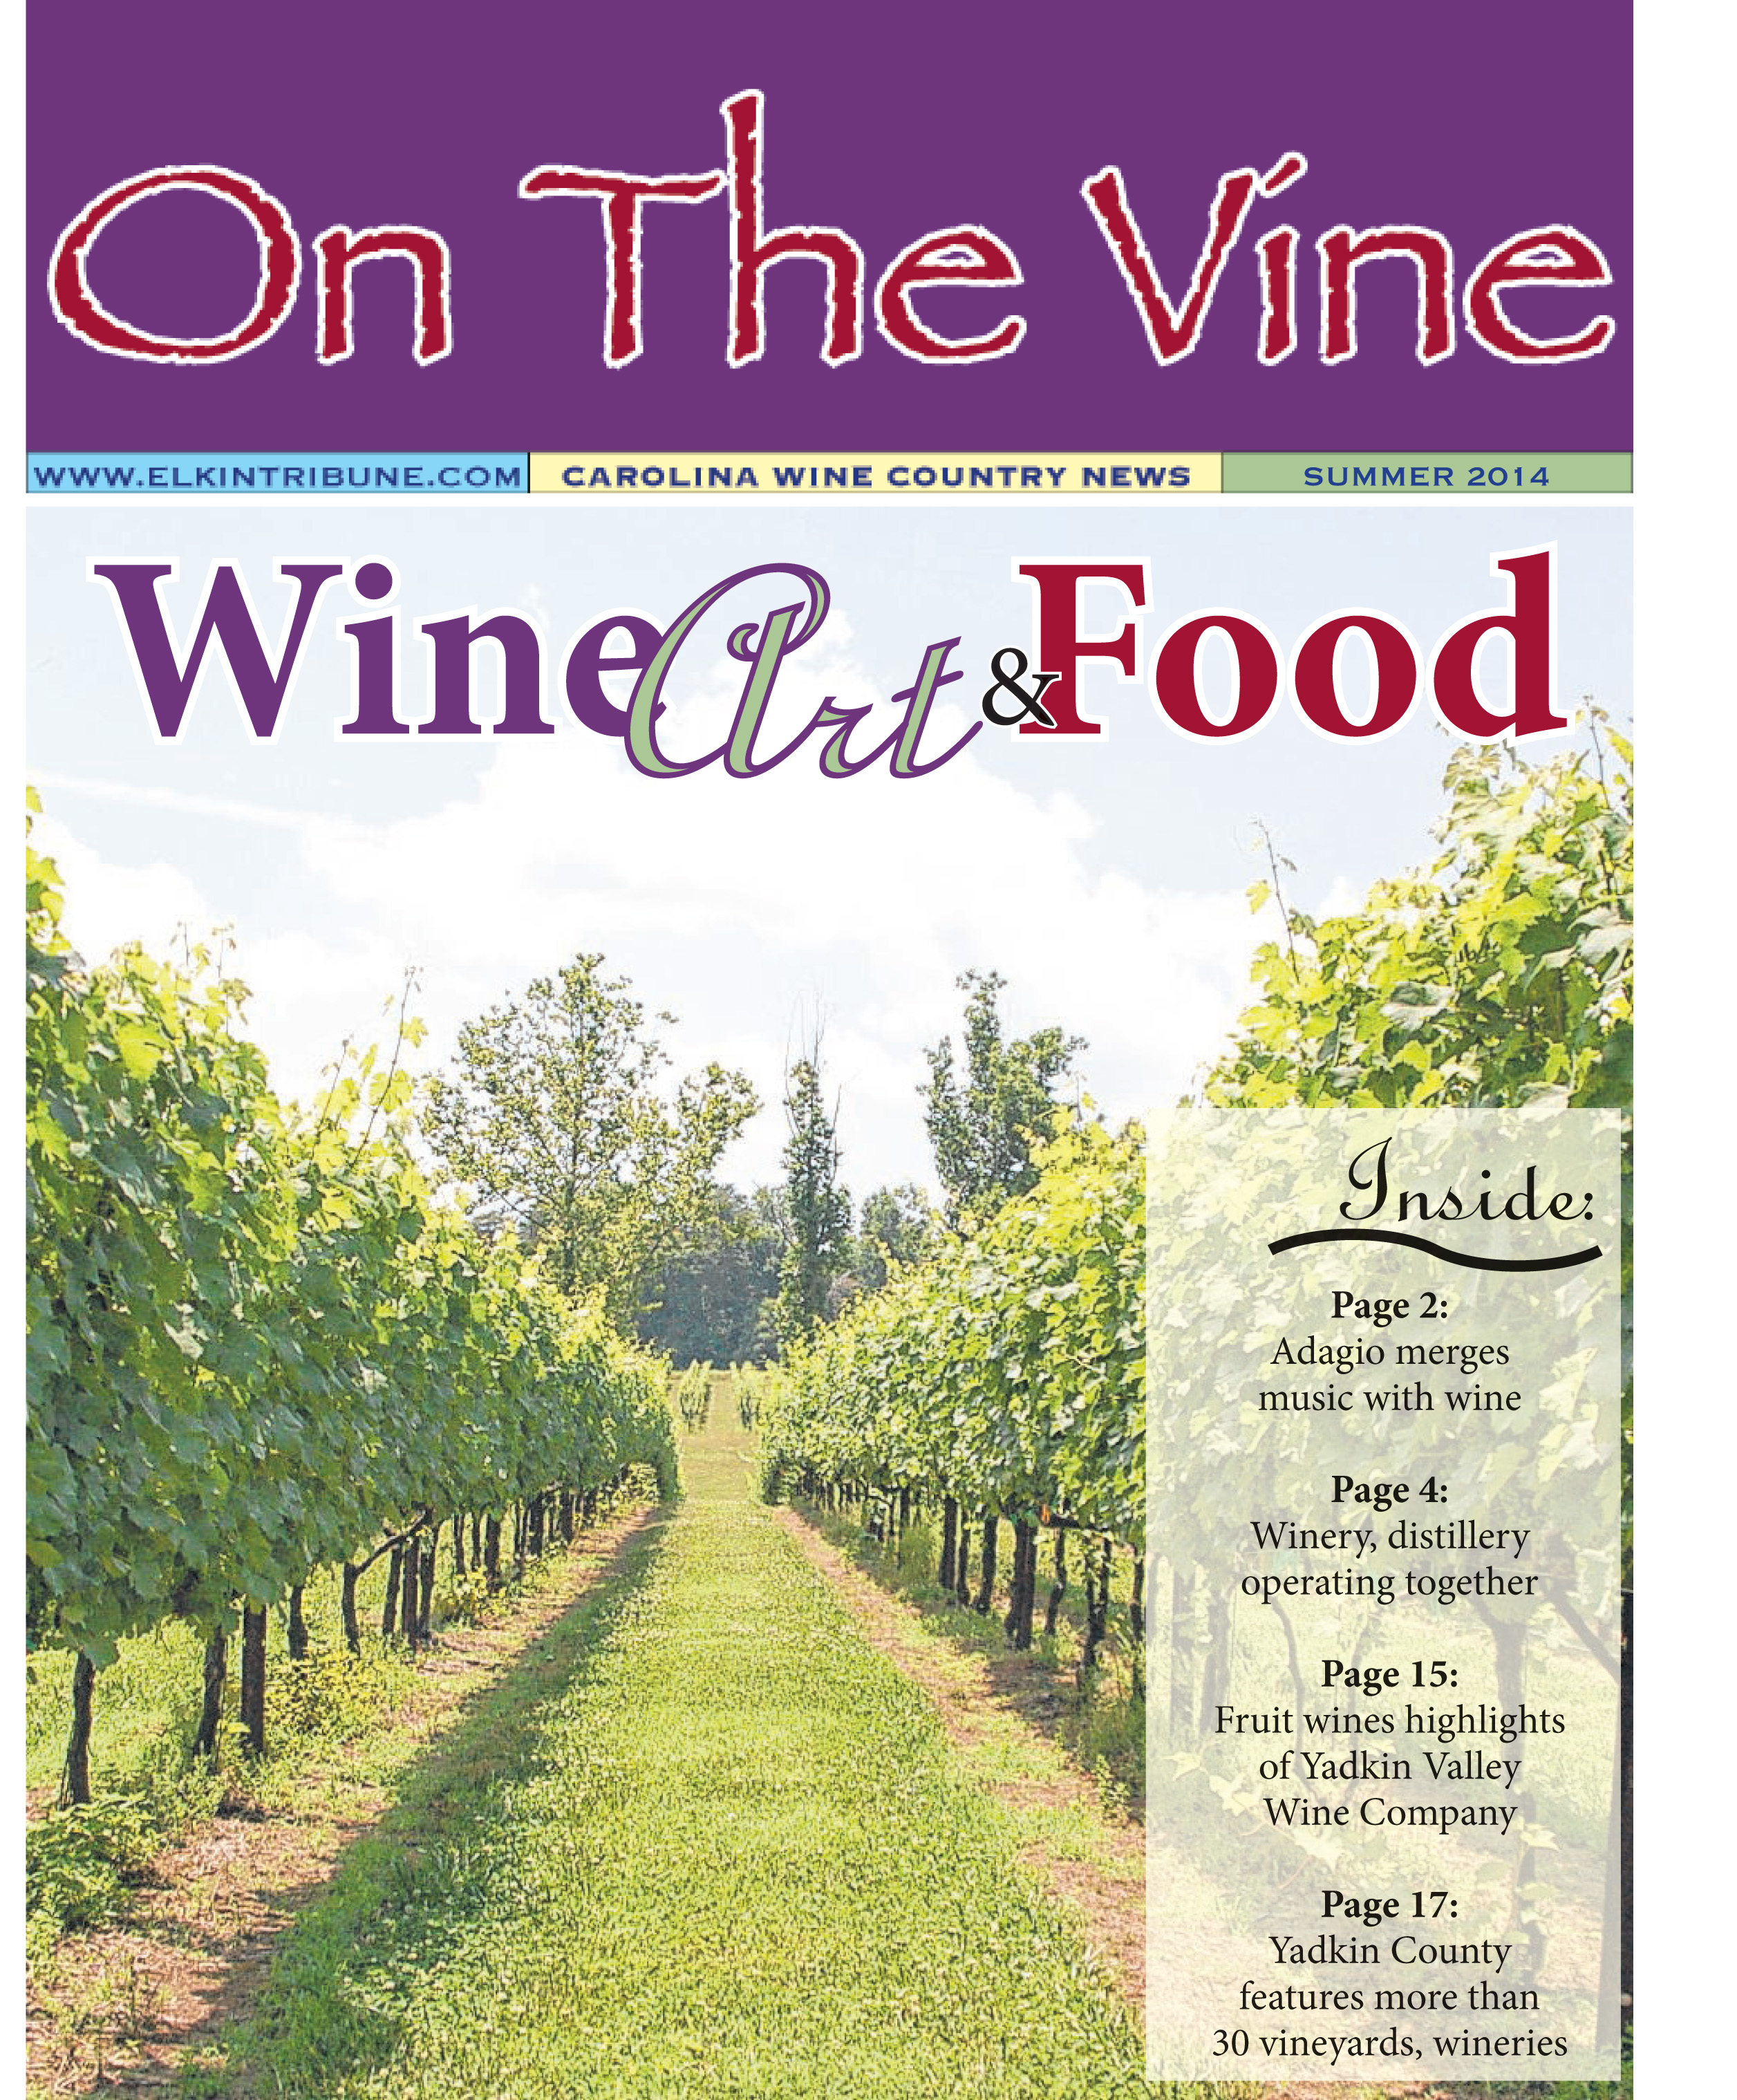 On the Vine – Summer 2014